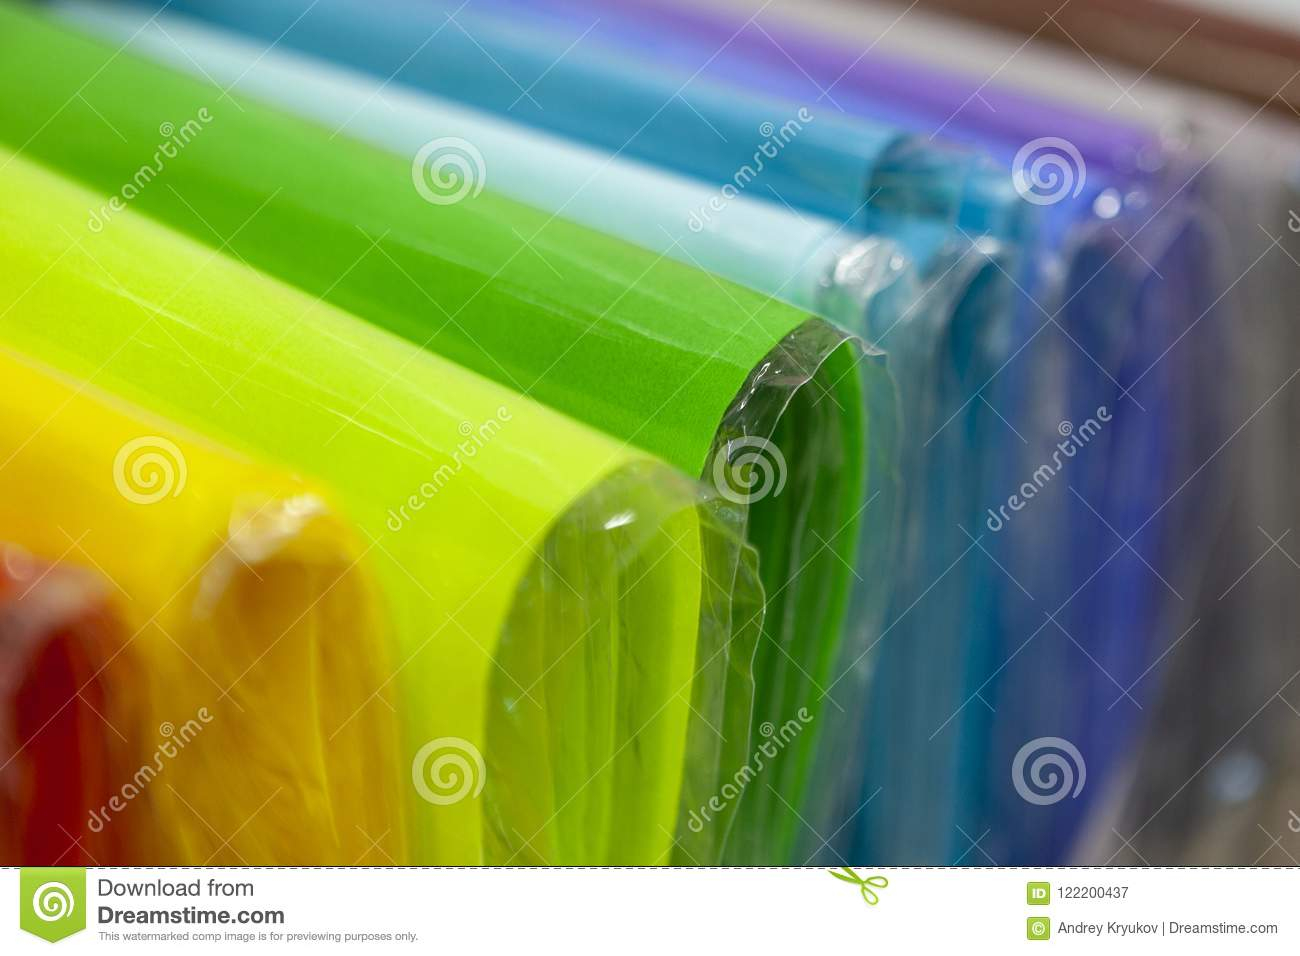 Bent Sheets Of Colored Cardboard In Package Close Up. Stock Image ...